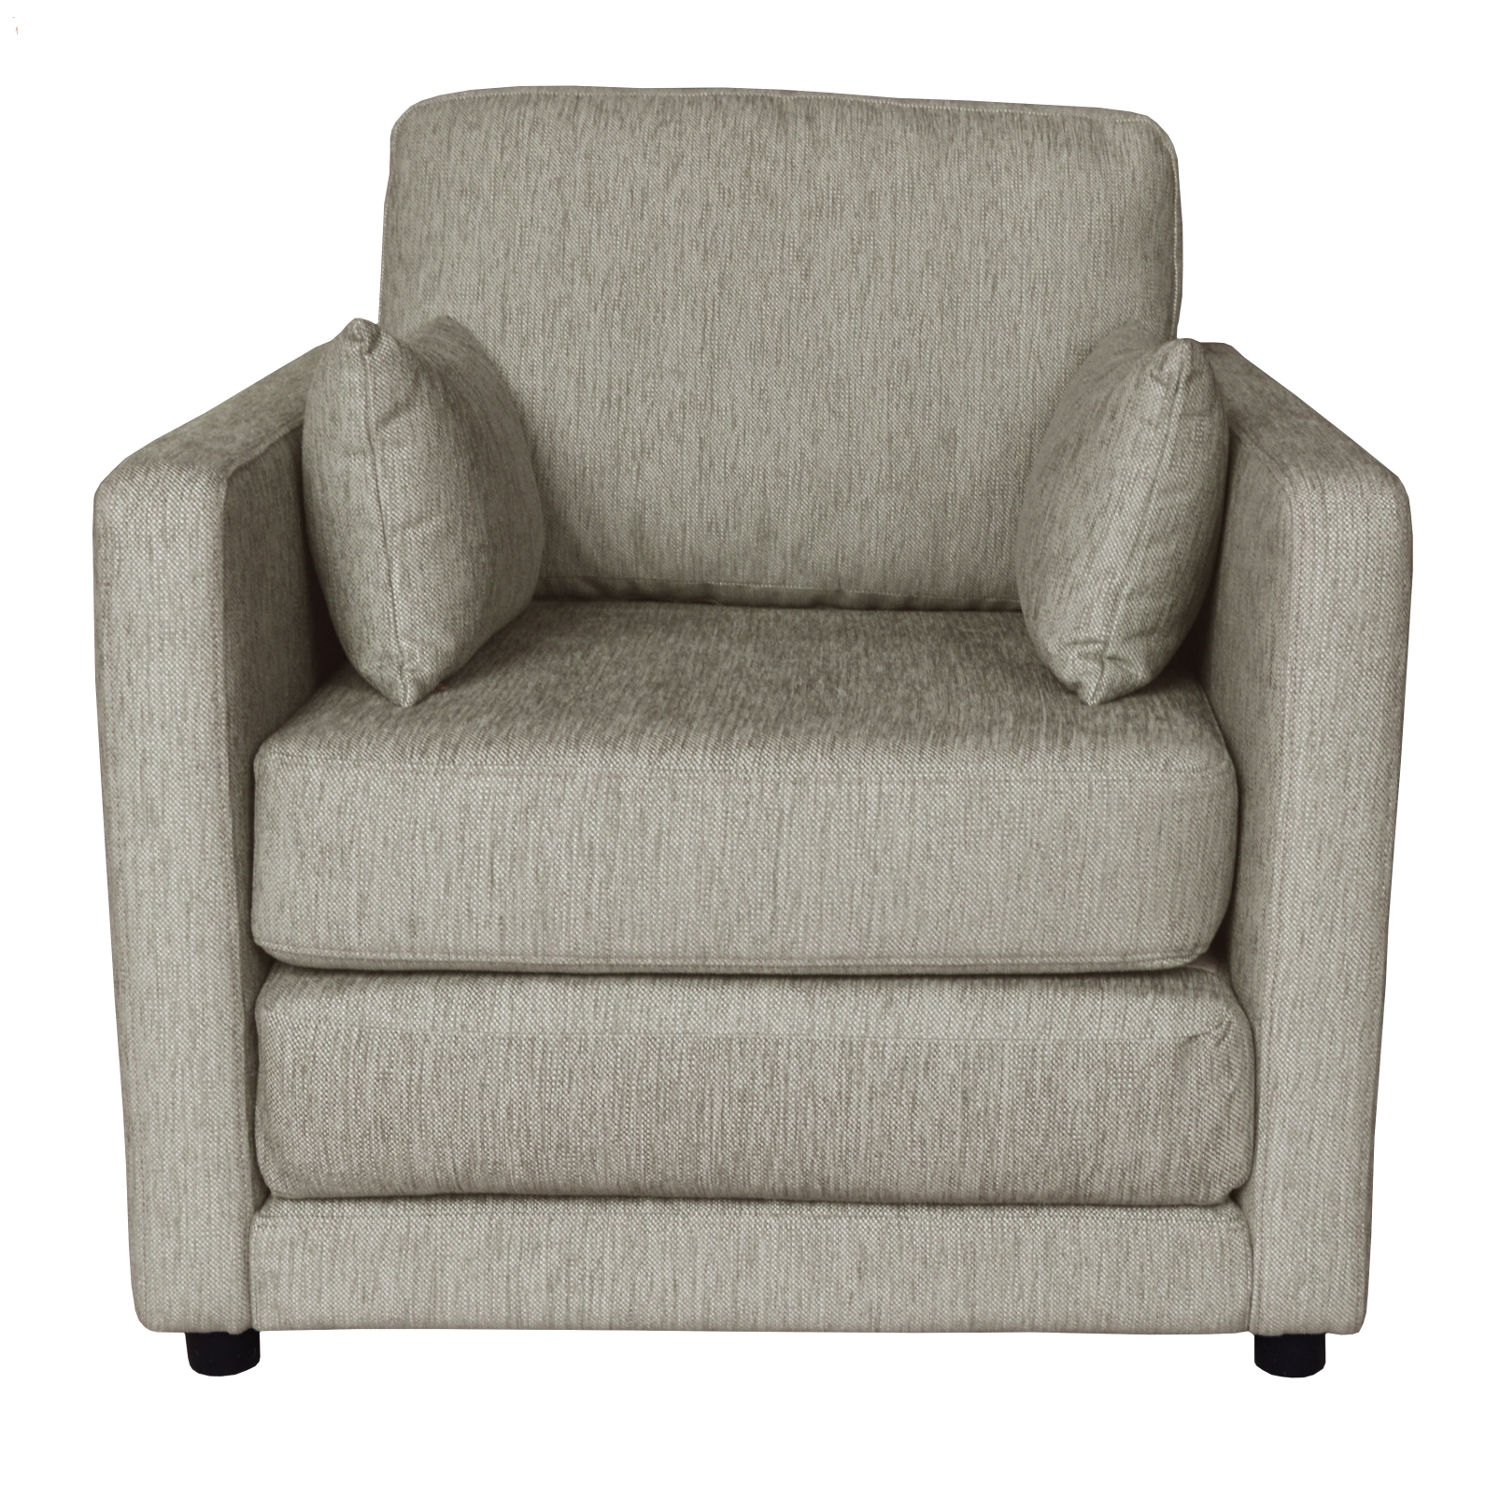 59 Sofas And Chairs Furniture Diy Furniture Sofas Armchairs Pertaining To Sofa Arm Chairs (Photo 8 of 15)